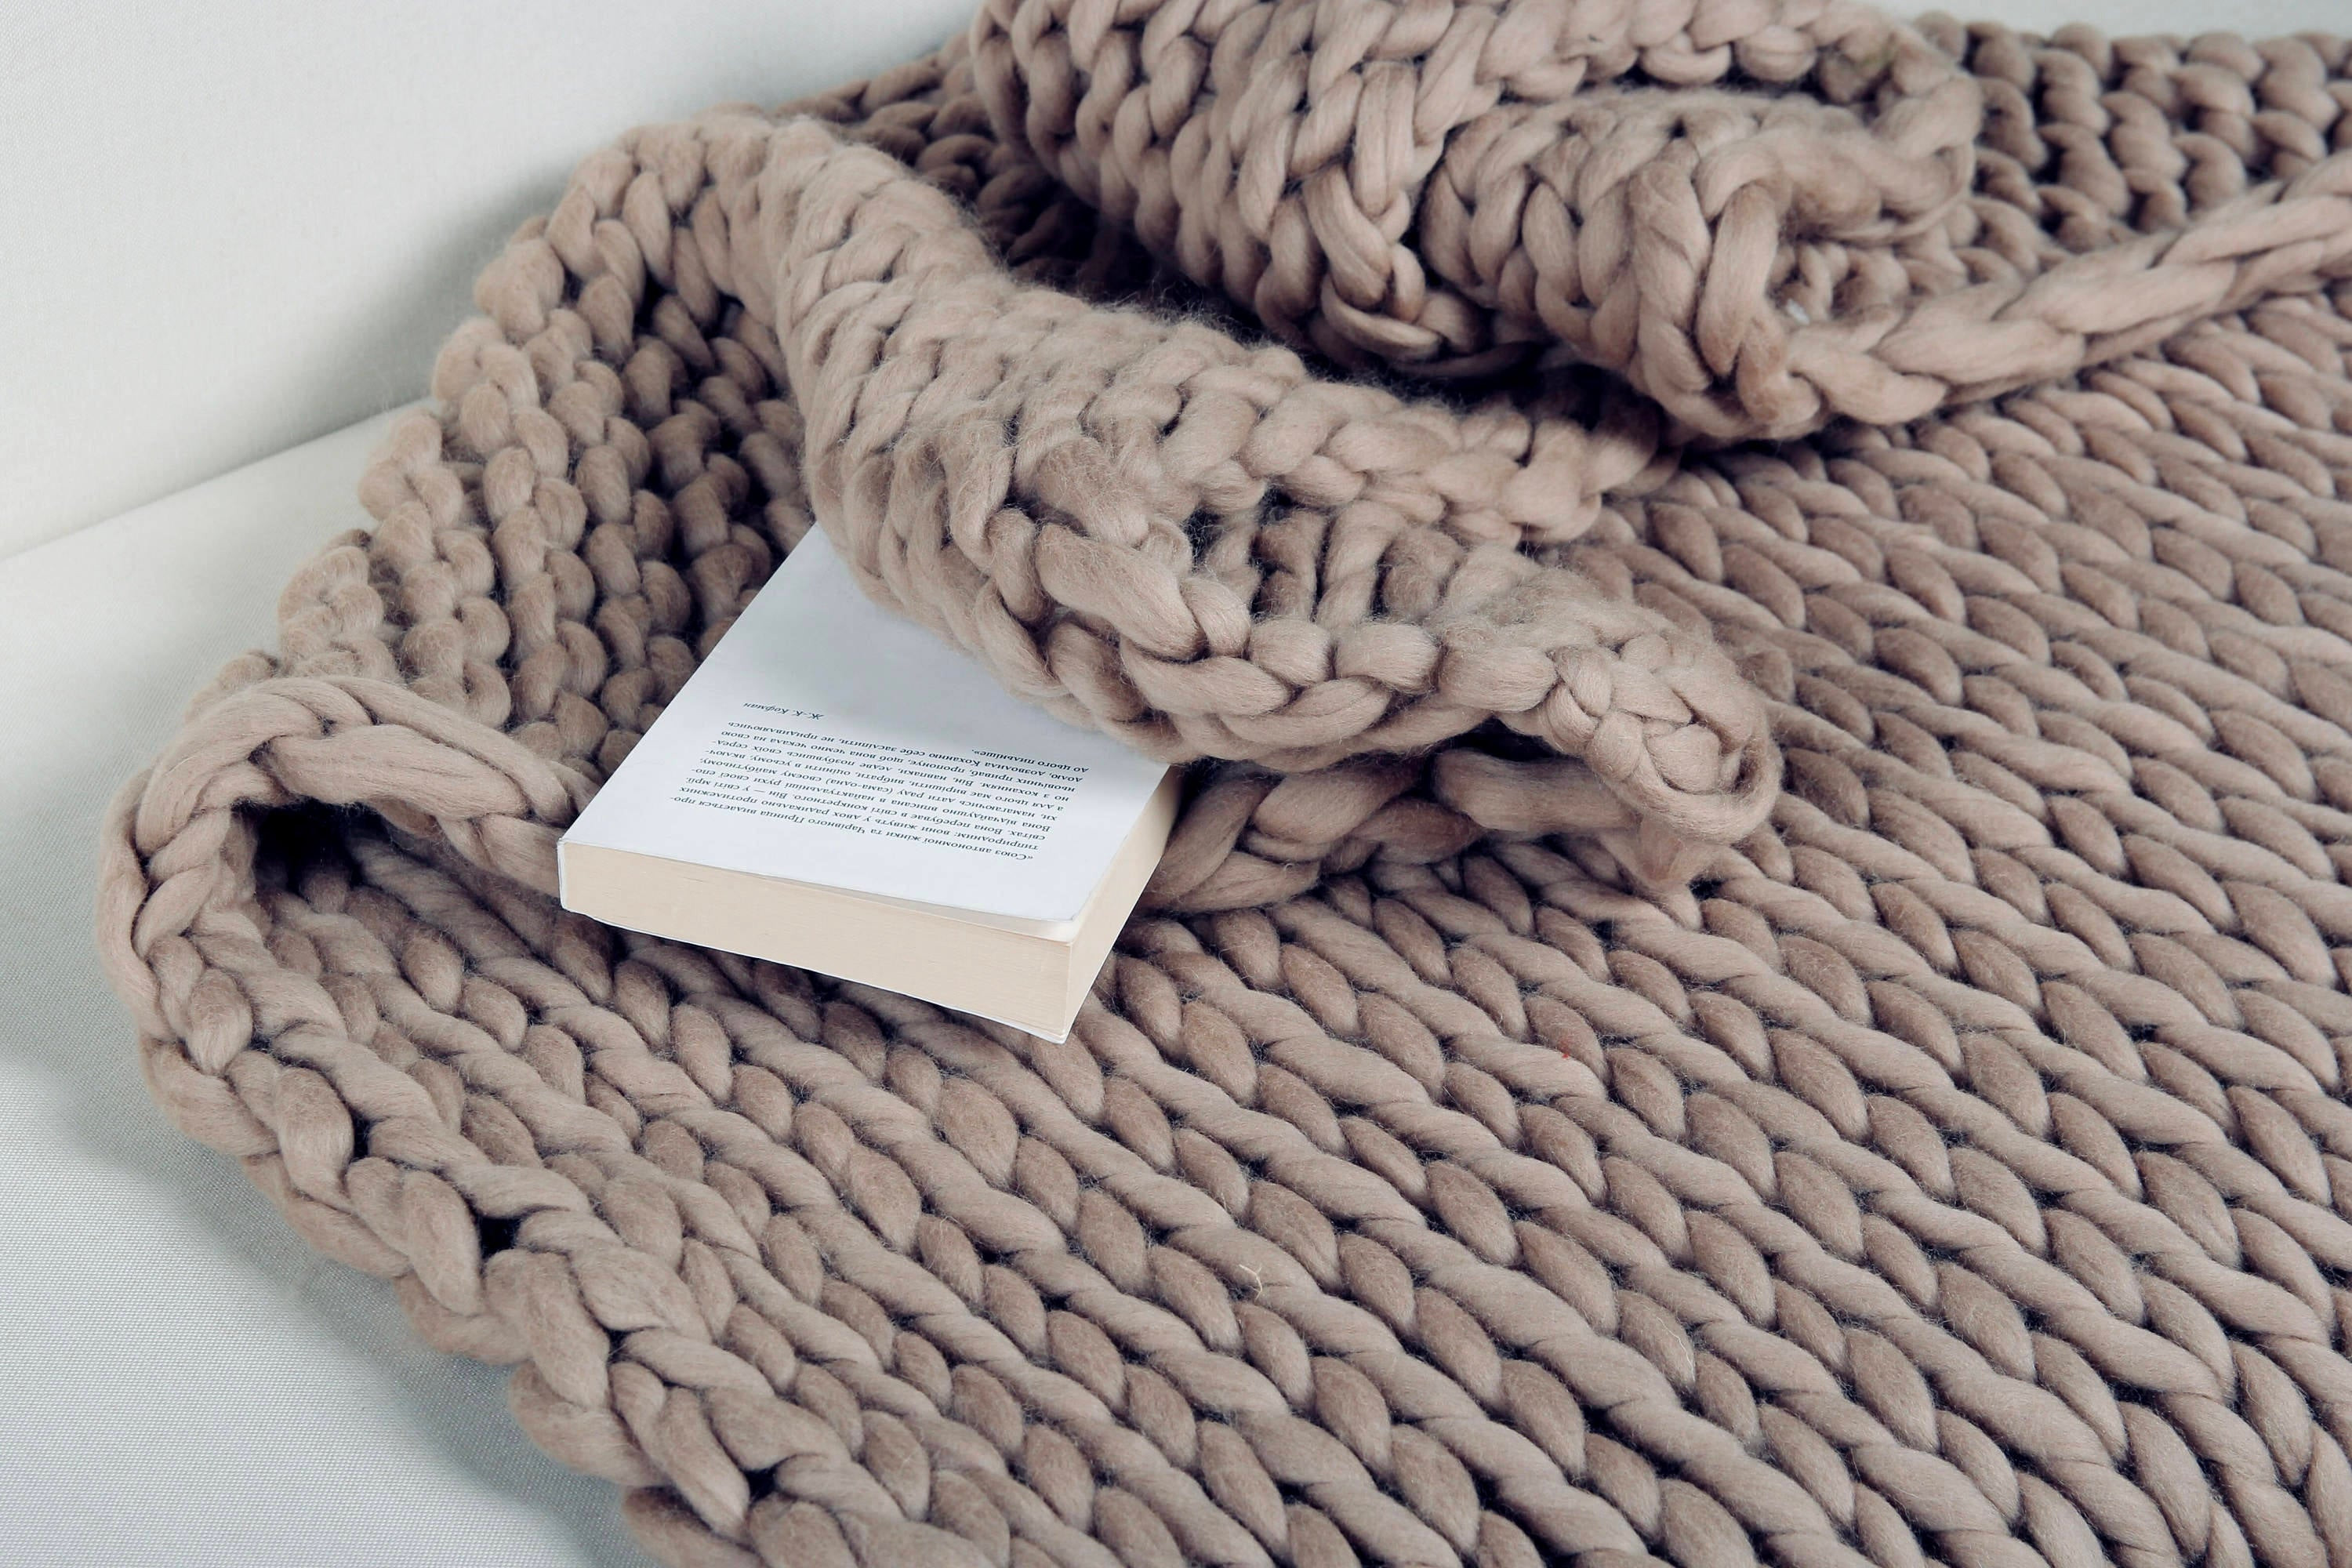 Chunky Wool Blanket Awesome Chunky Knit Blanket Throw Blanket Merino Wool Blanket Knit Of Incredible 43 Pictures Chunky Wool Blanket